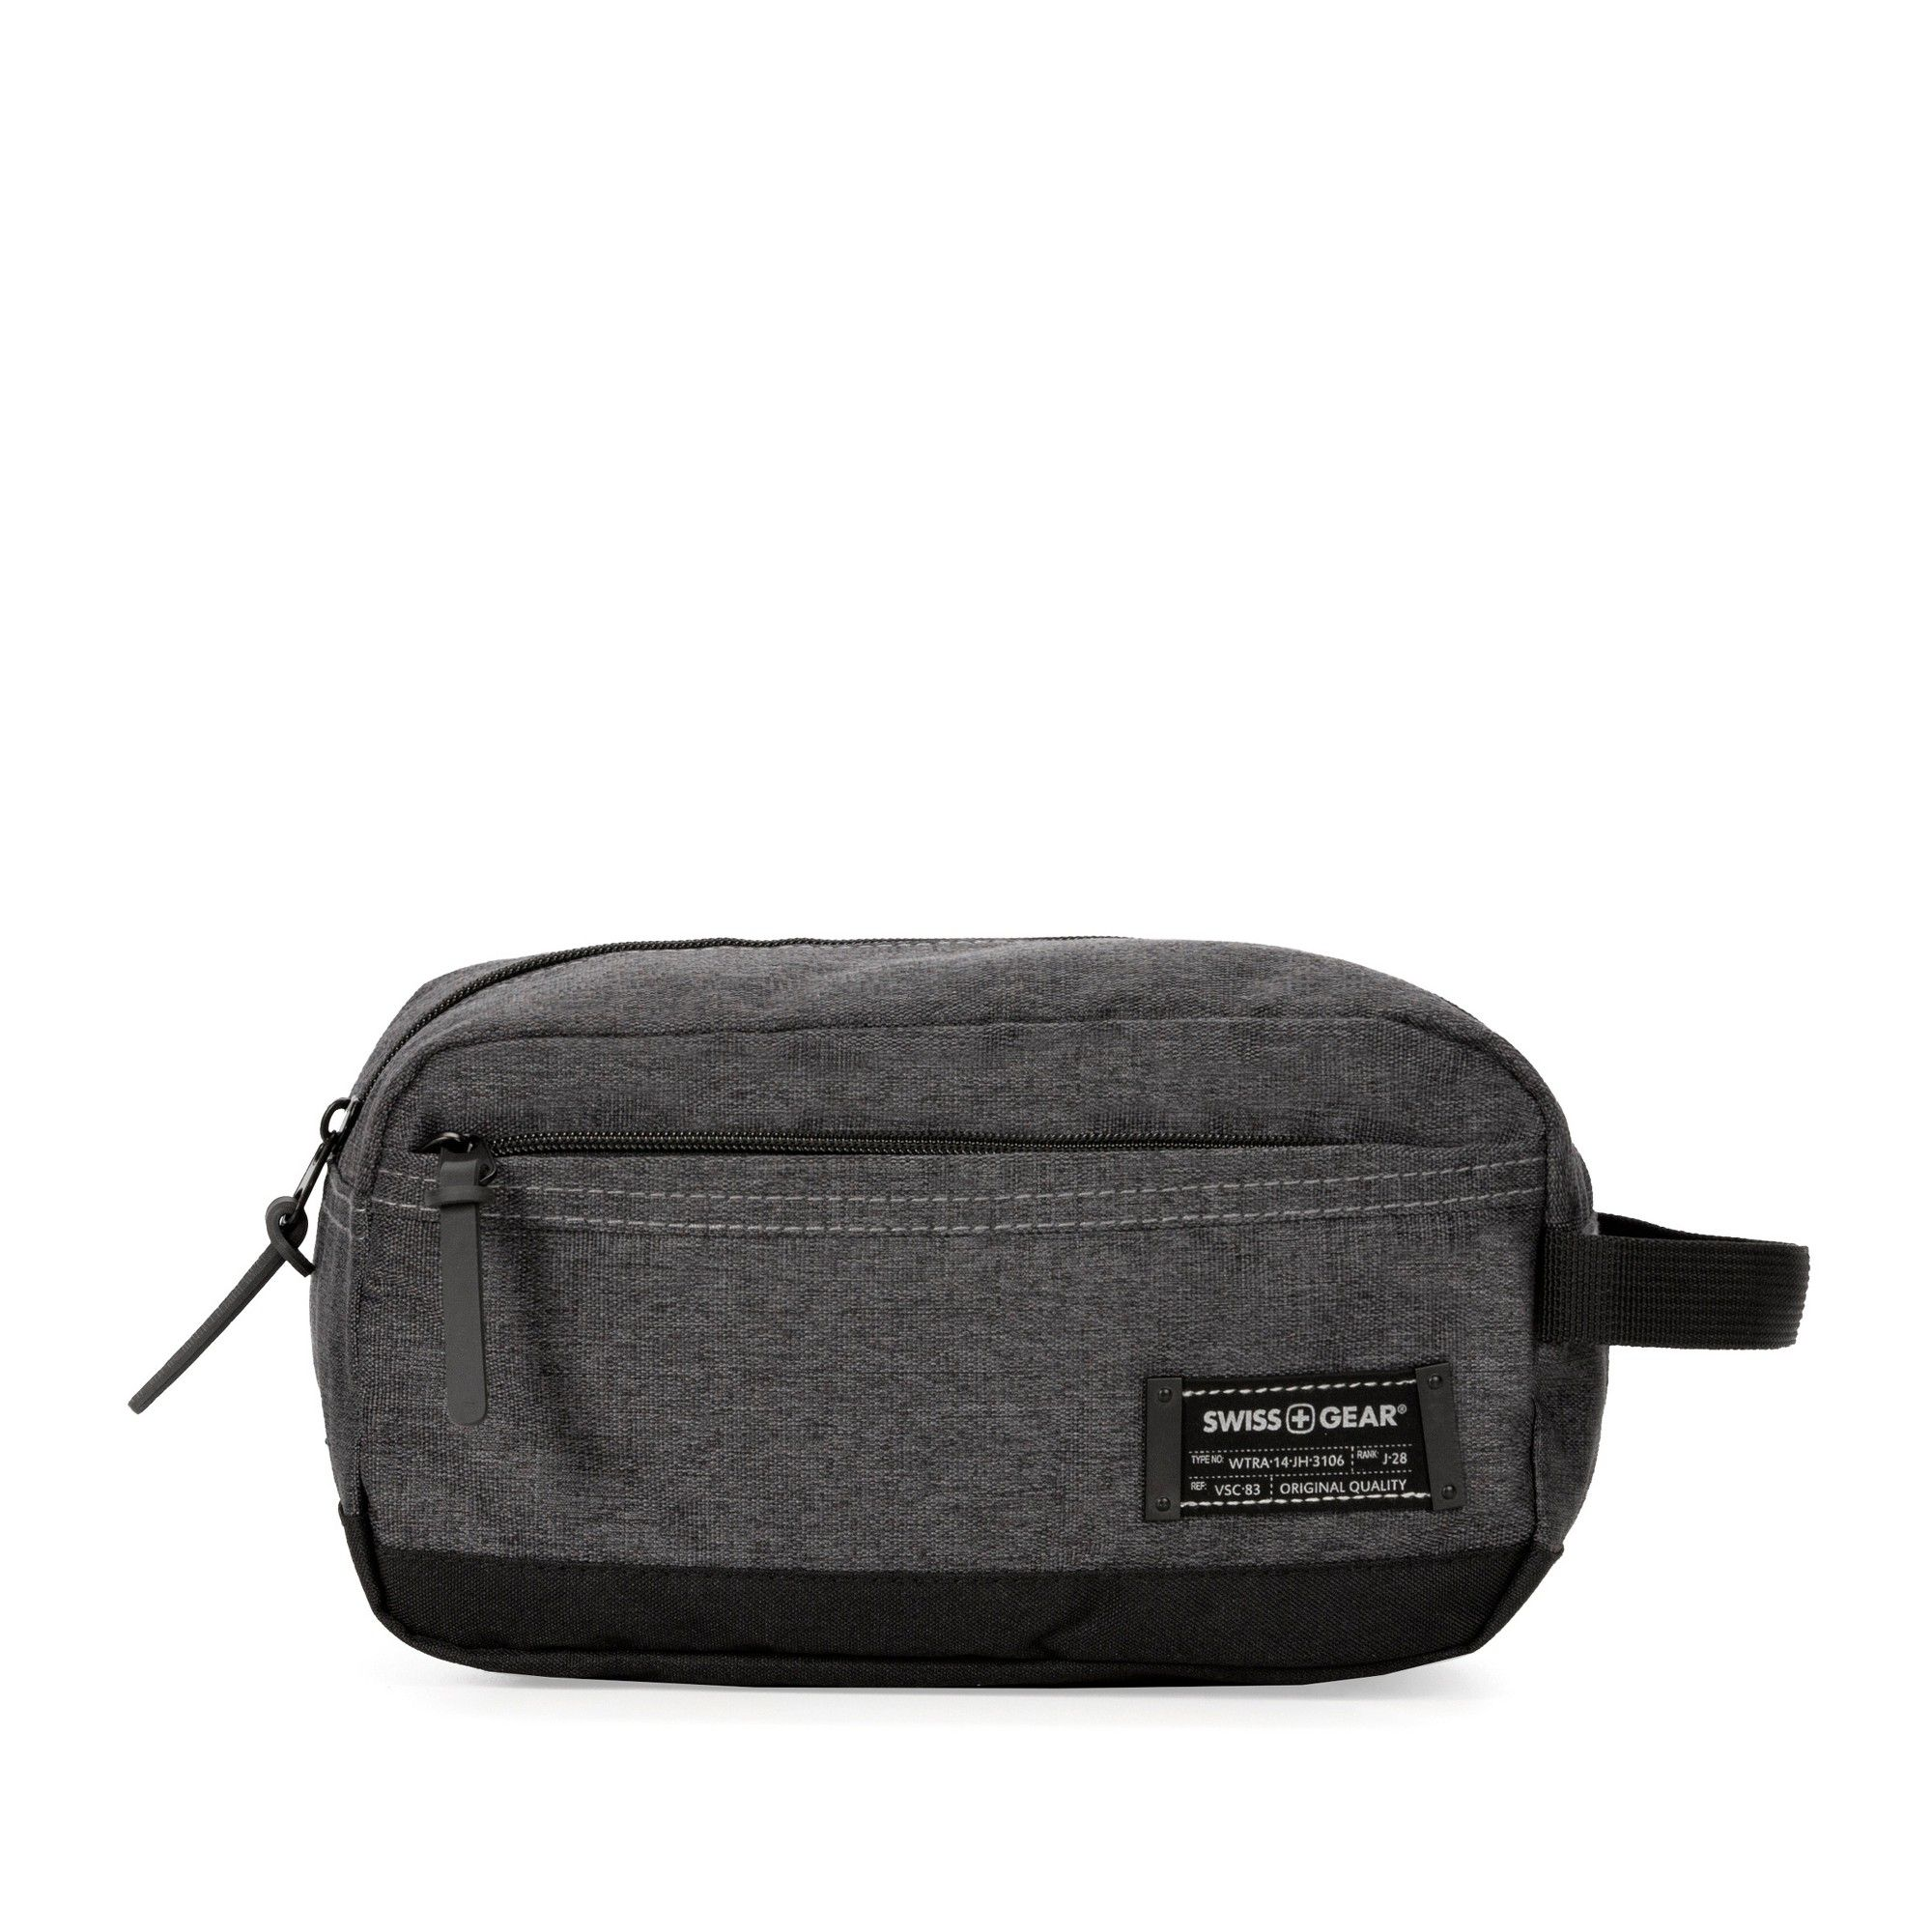 Swissgear Toiletry Bag Gray Size Large Products In